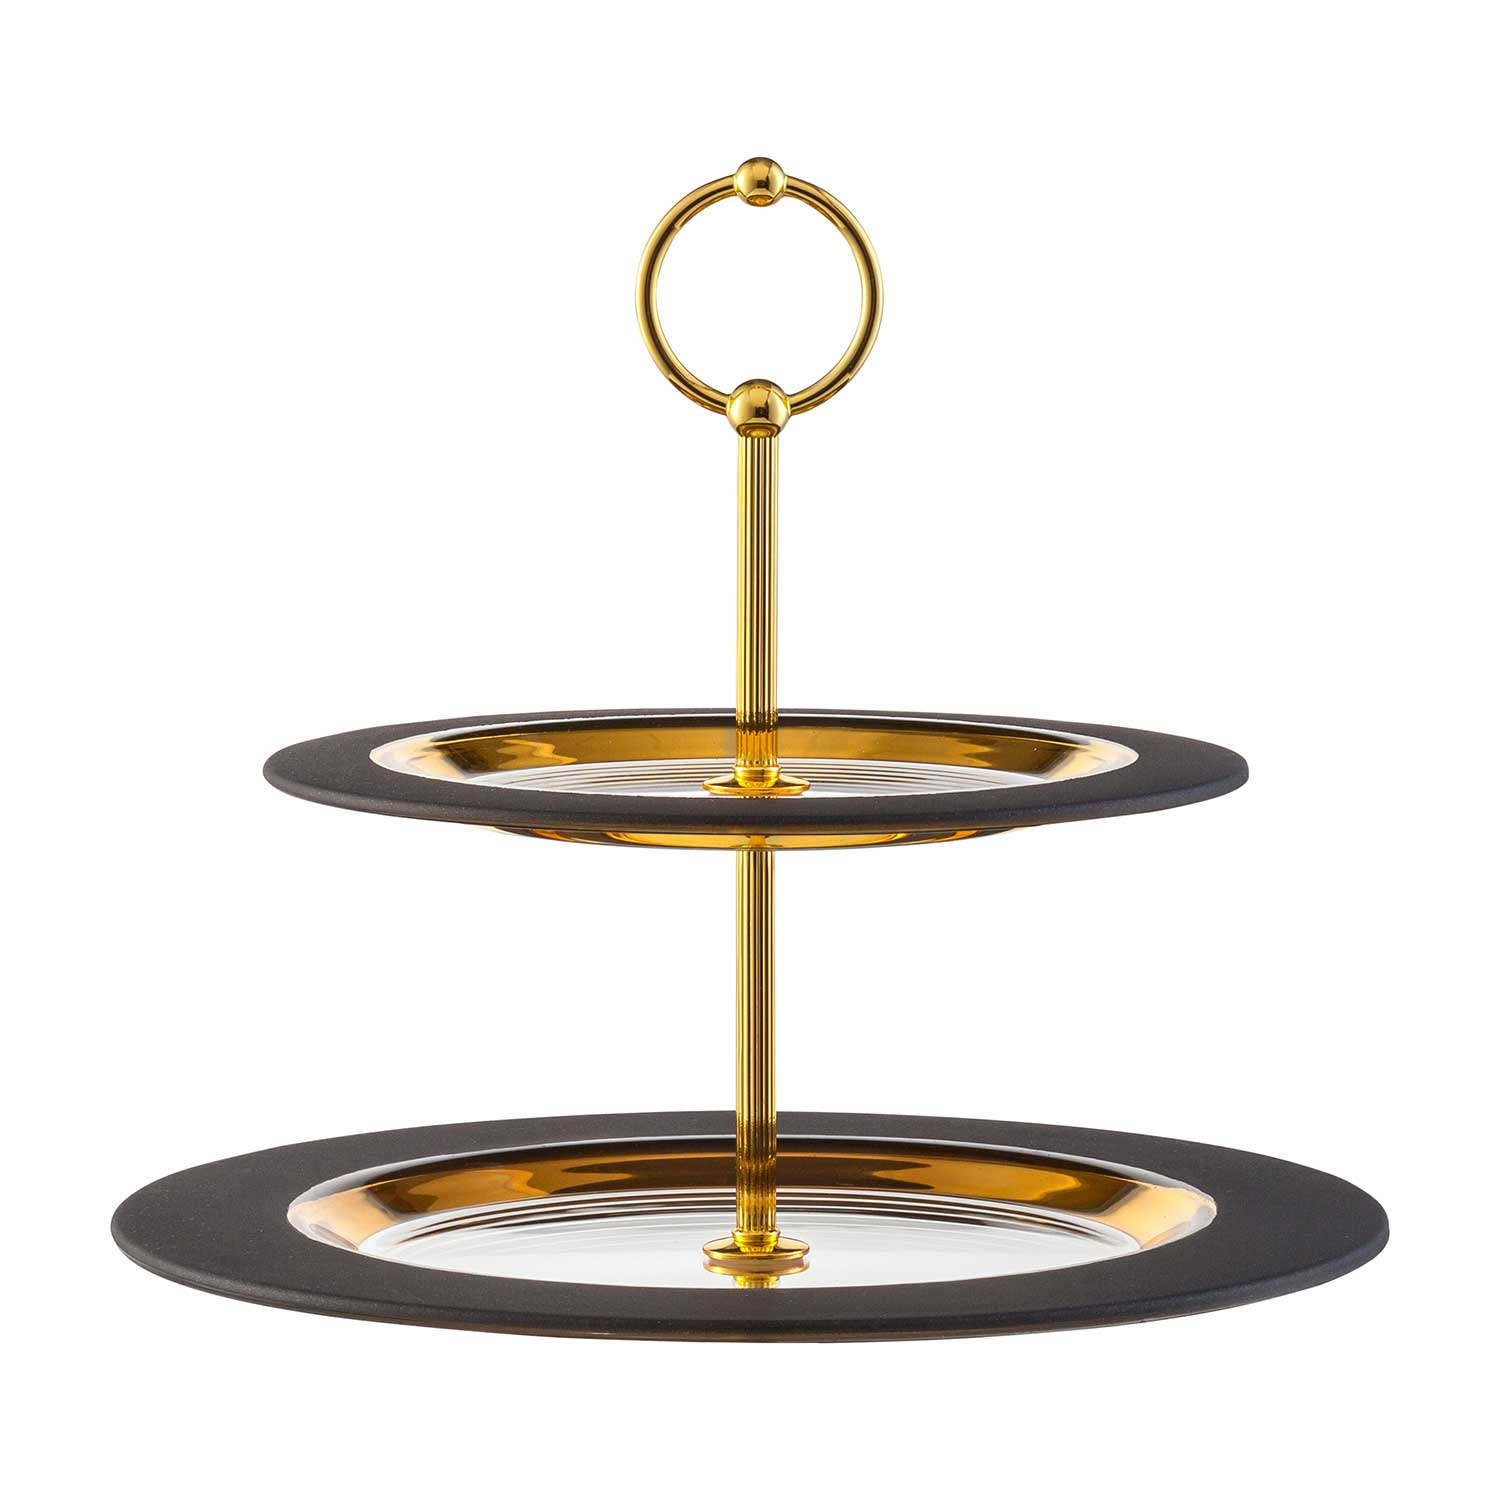 COSMO GOLD 2er Etagere